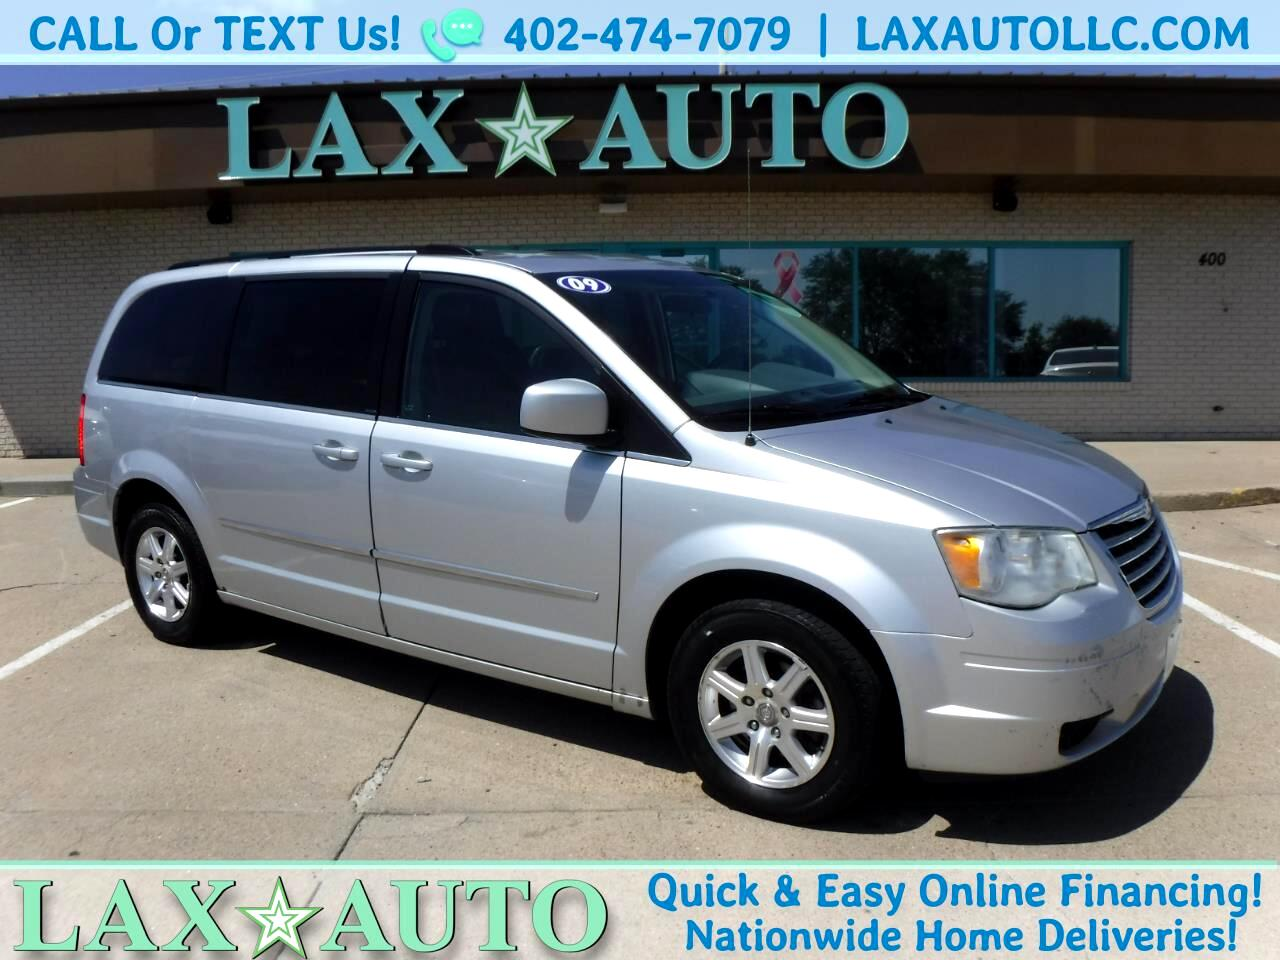 2009 Chrysler Town & Country Touring w/ 181k miles * Back-up cam!